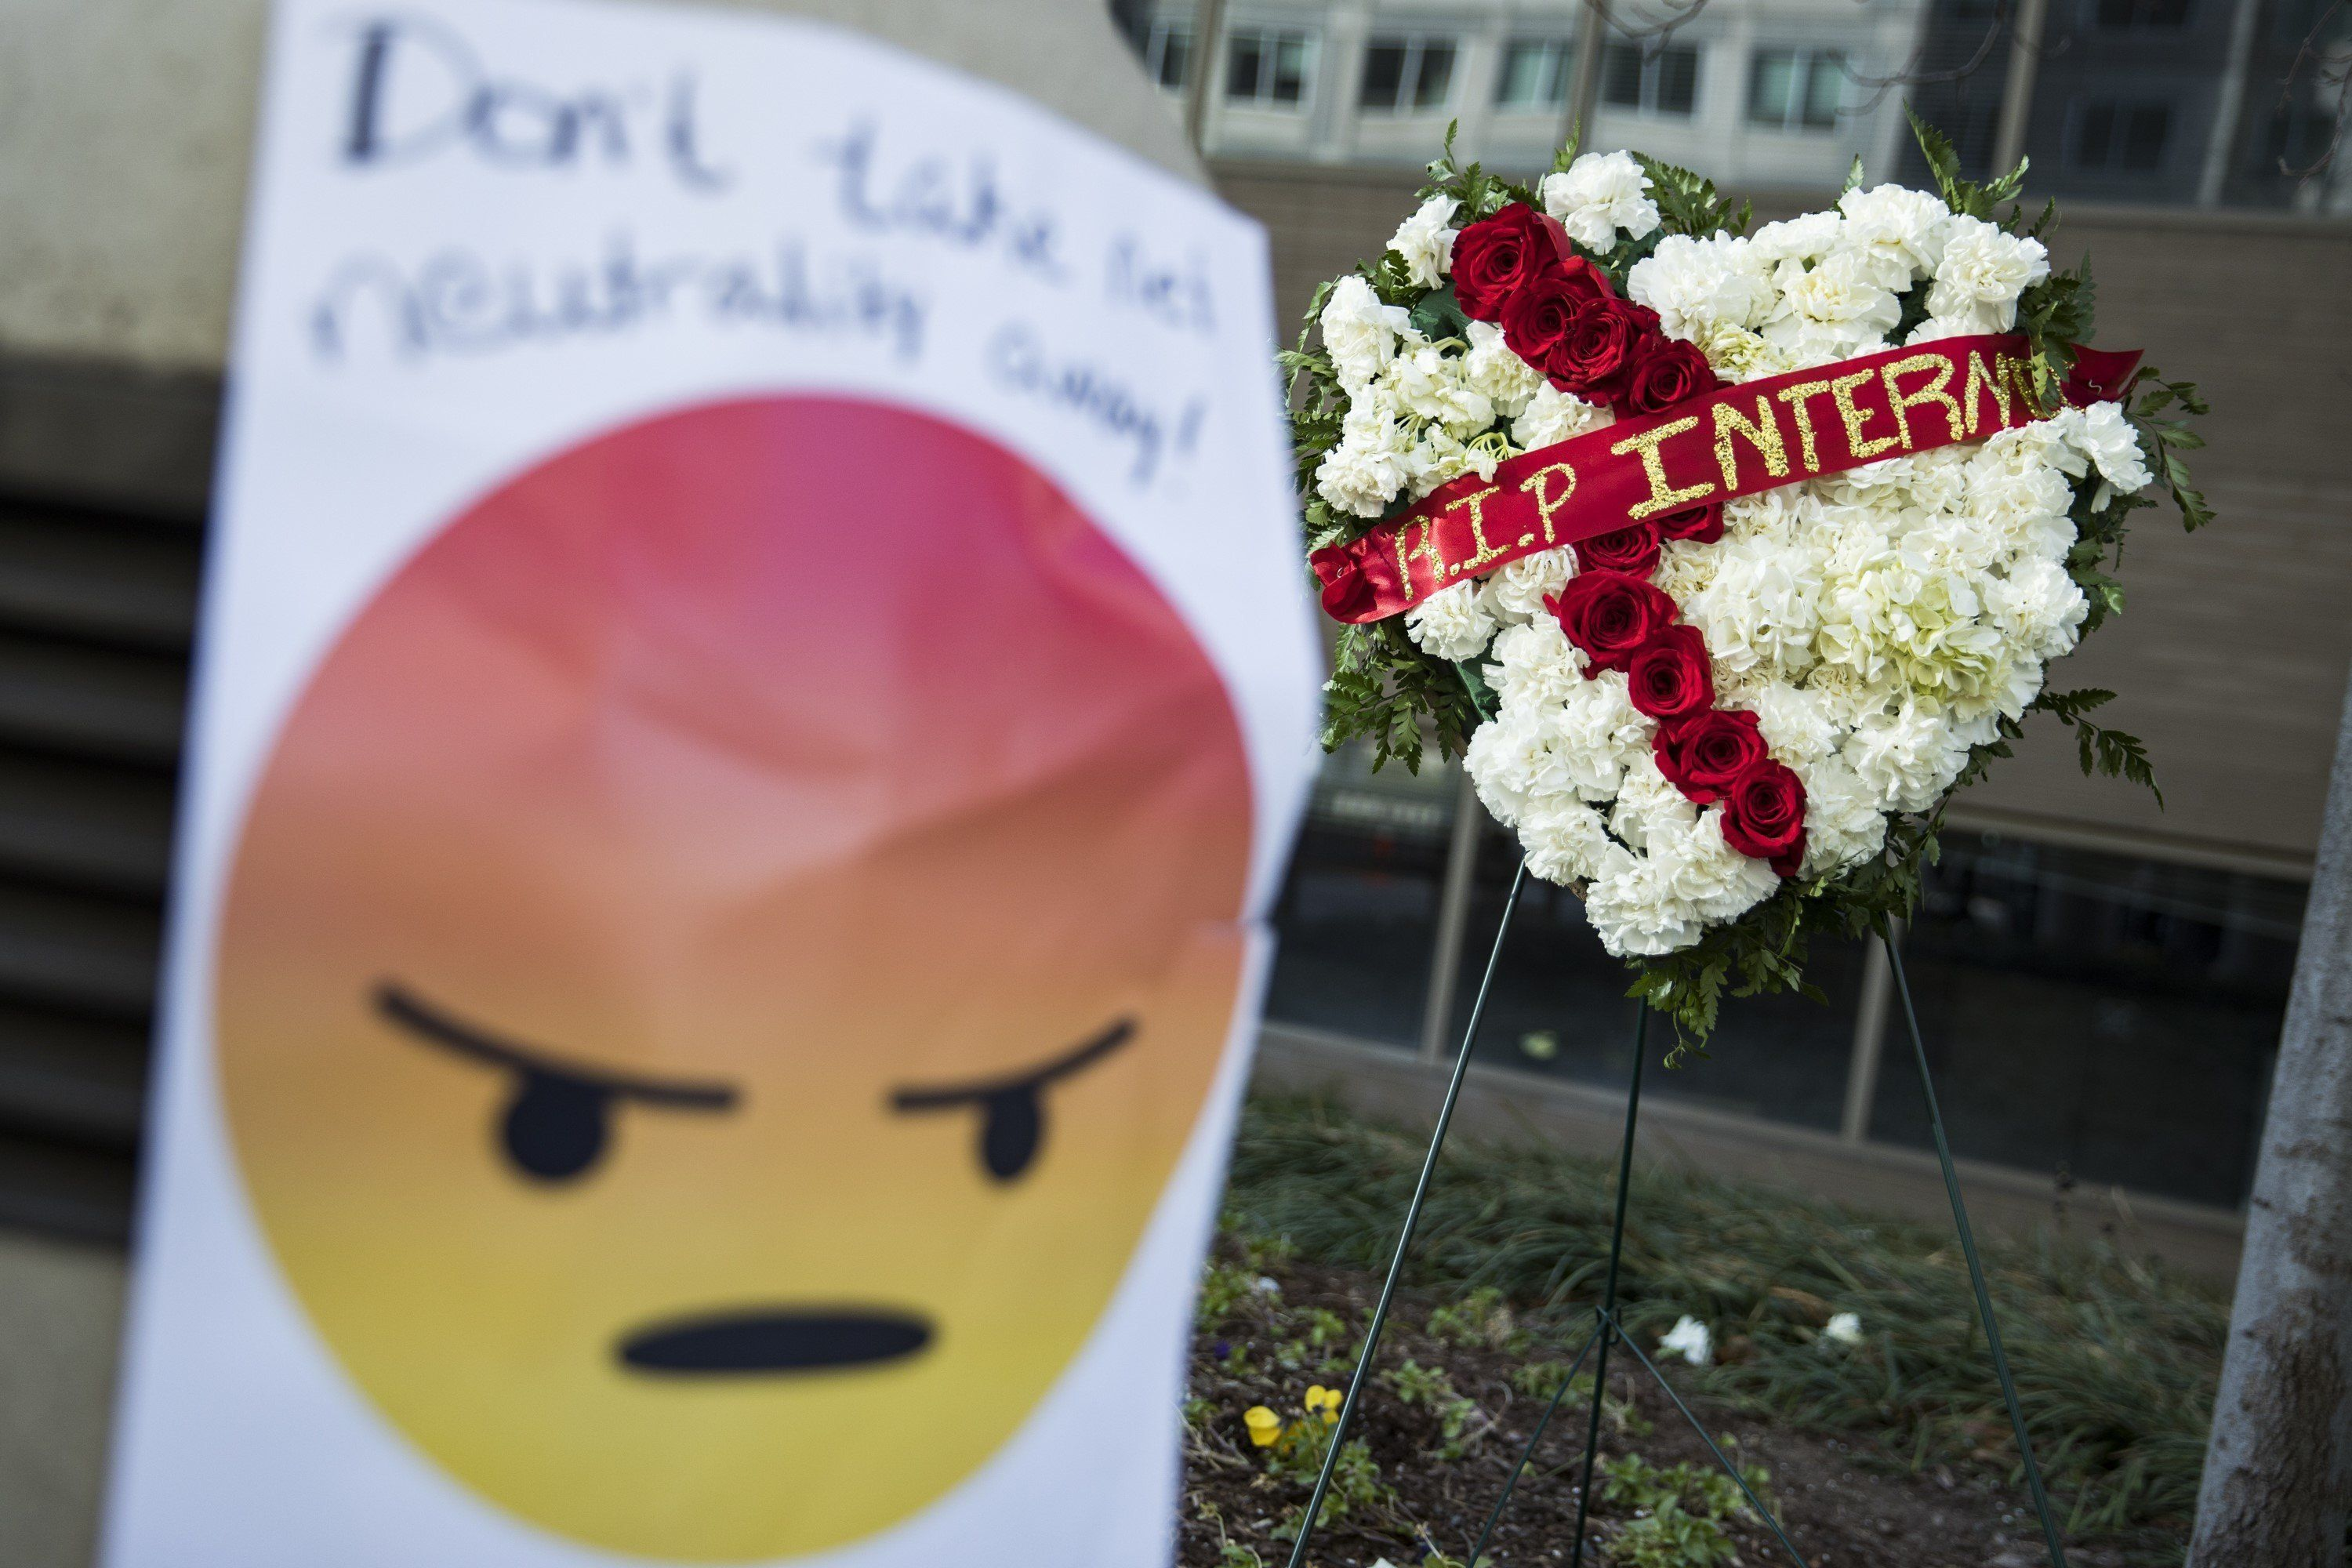 WASHINGTON, USA - December 14: Protestors laid flowers and notes outside of the Federal Communications Commission (FCC) headquarters after the FCC repealed the Obama era regulations protecting Net Neutrality in Washington, USA on December 14, 2017. (Photo by Samuel Corum/Anadolu Agency/Getty Images)